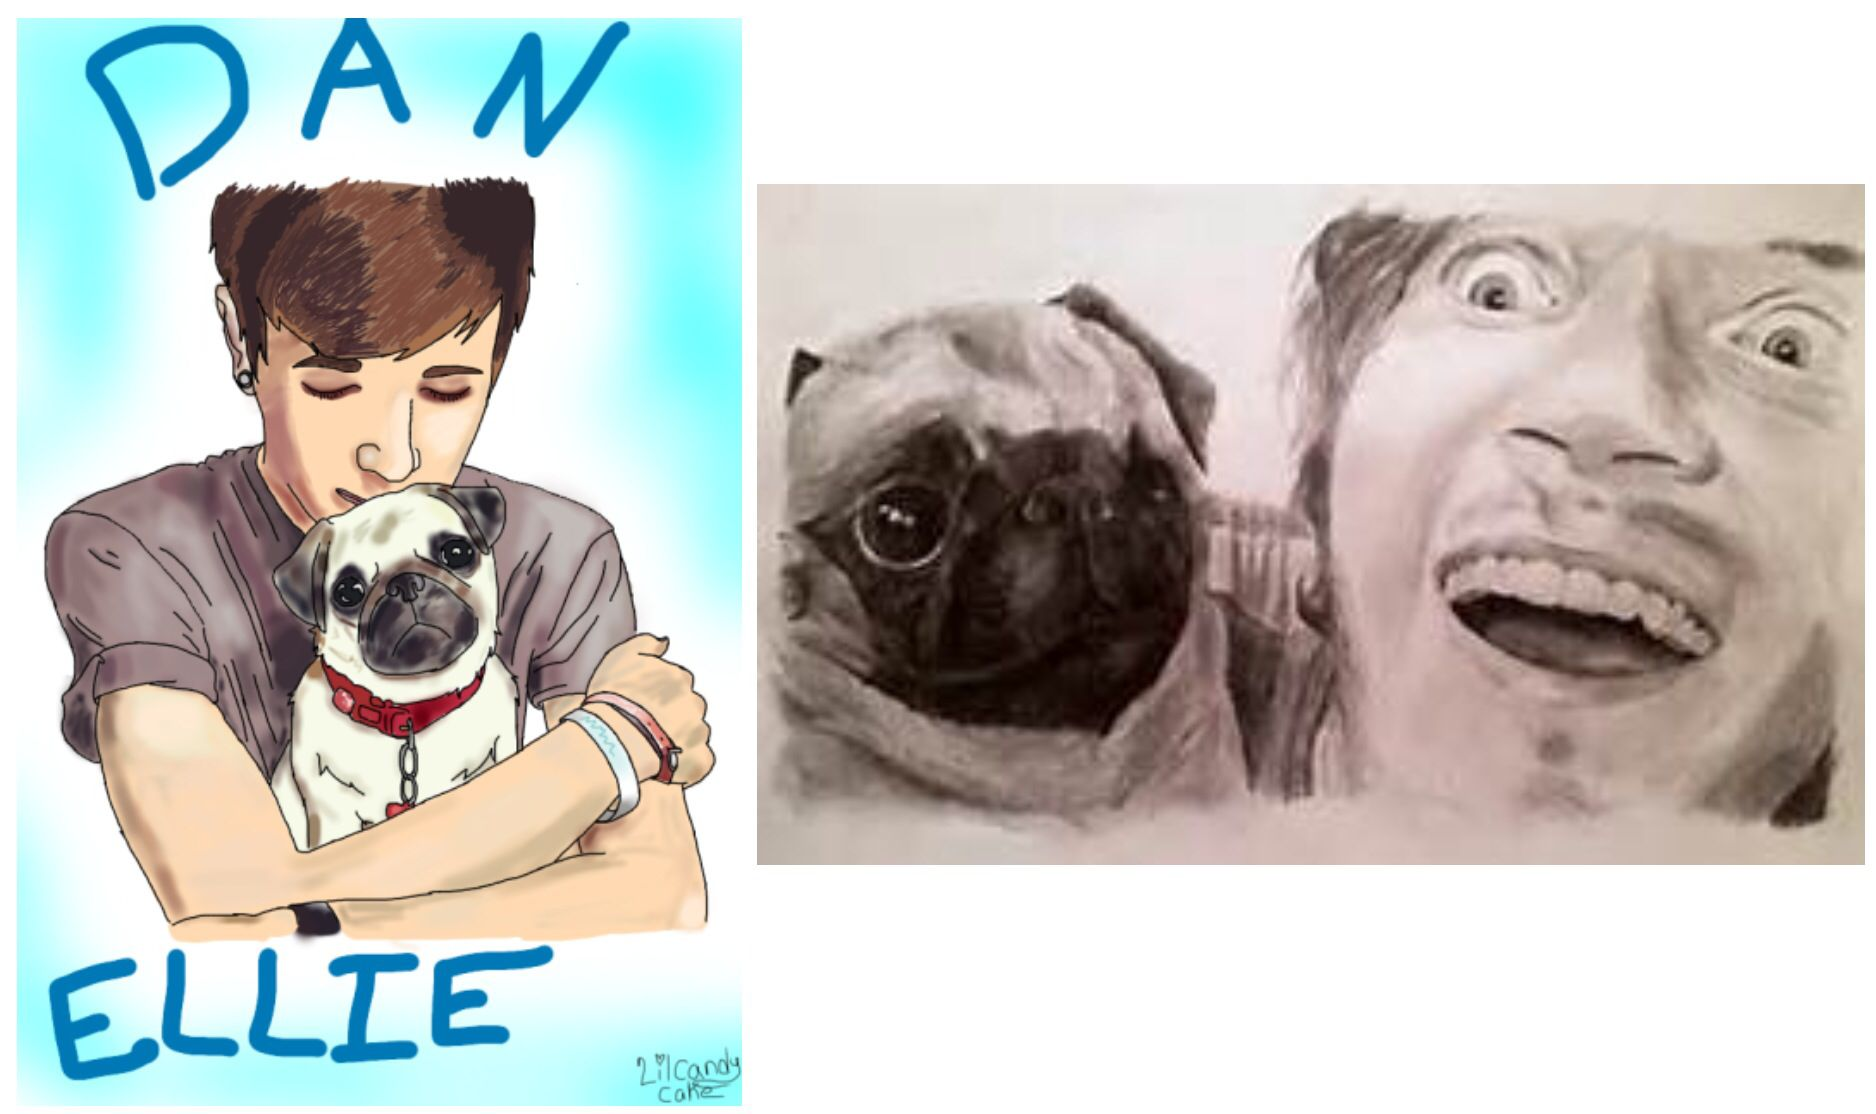 Both Of My Favorite Youtubers Have Pugs Weird Lol